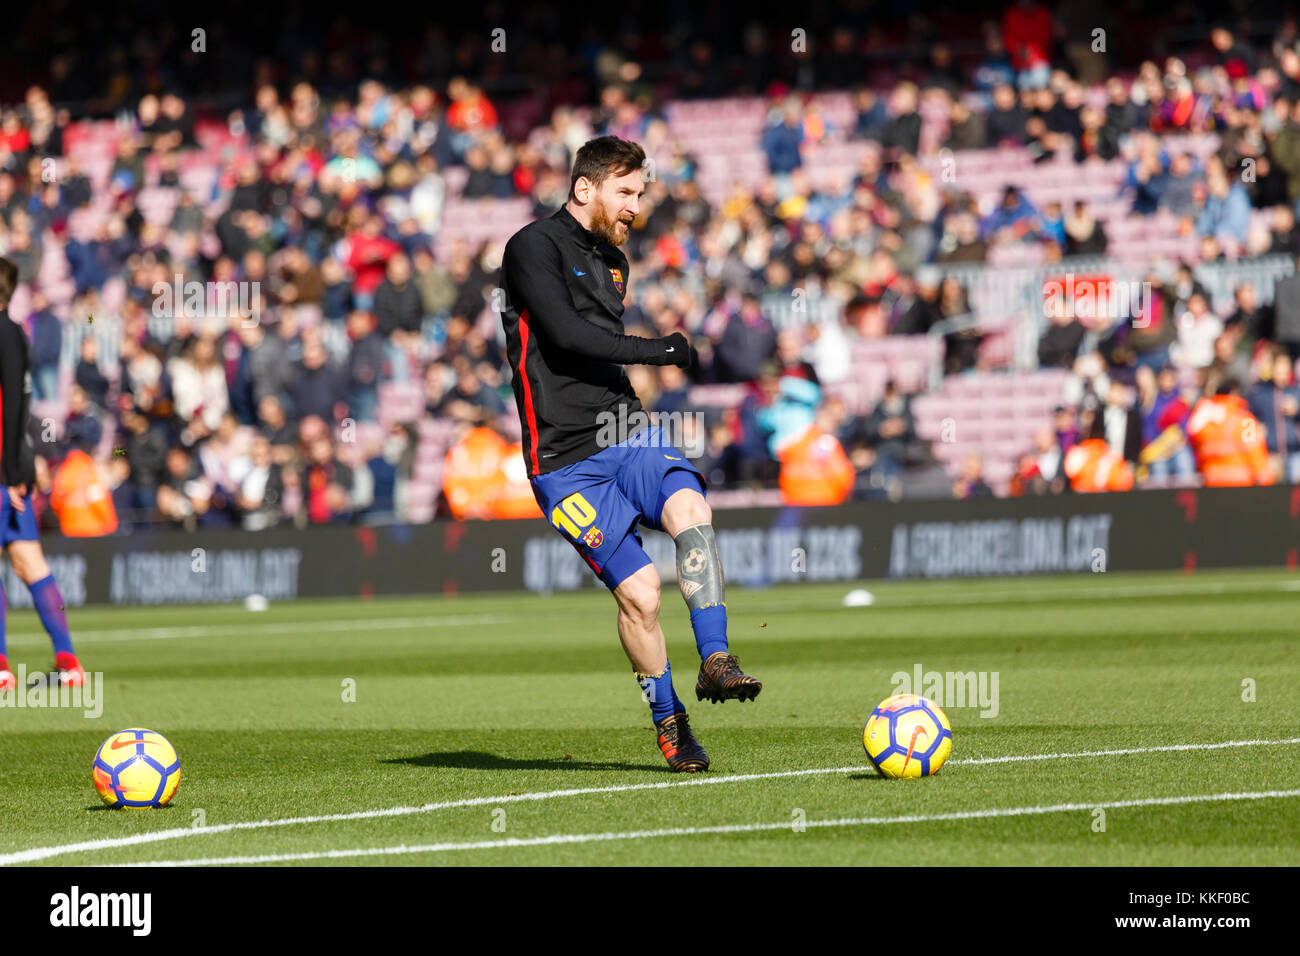 Barcelona, Spain. 02nd Dec, 2017. (10) Messi training before the first half of the La Liga match between FC Barcelona - Stock Image